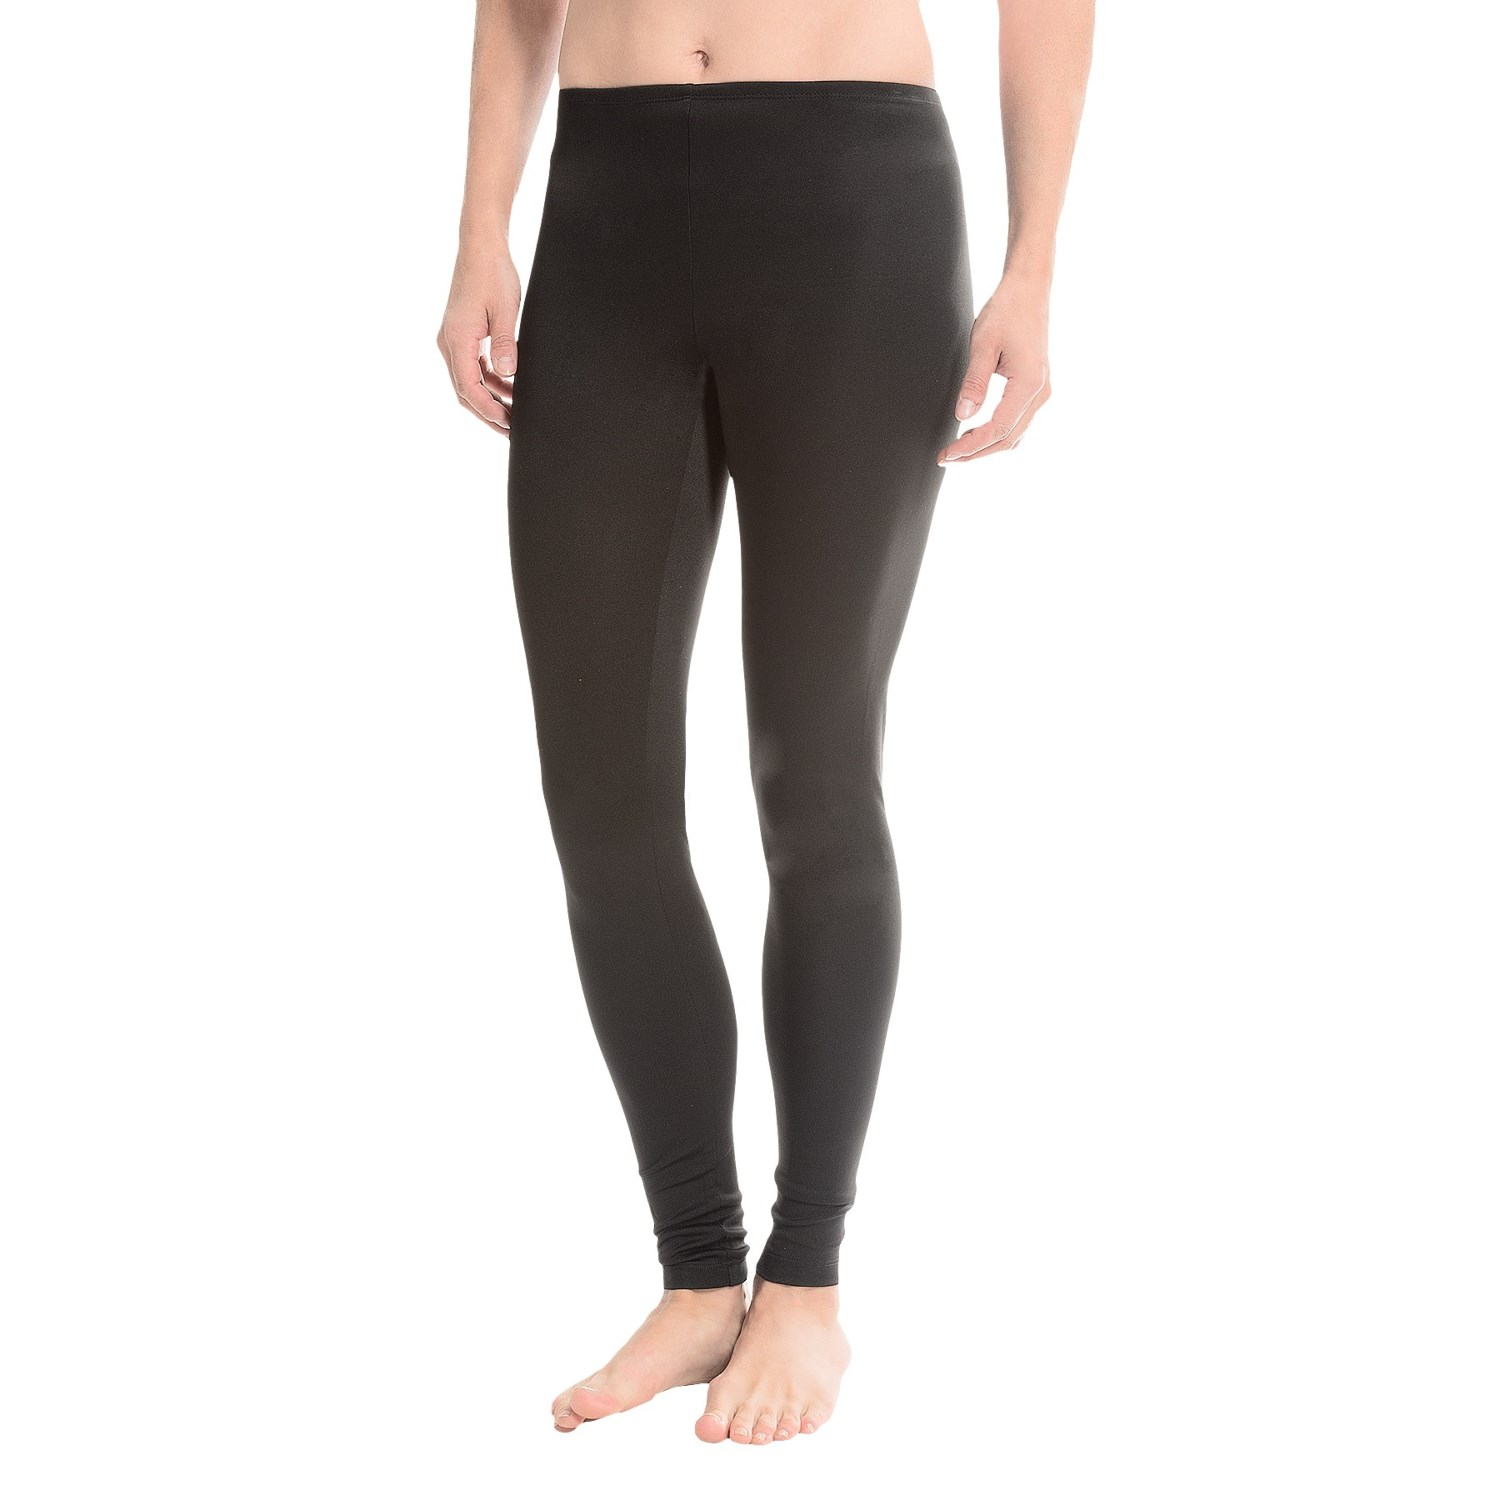 Leggings for Women are versatile, and go great with your everyday wardrobe! Kohl's has all the popular brands of leggings, like womens French Laundry fashion leggings and womens Champion leggings. And be sure to check out our variety of size and style options available, including womens maternity leggings.